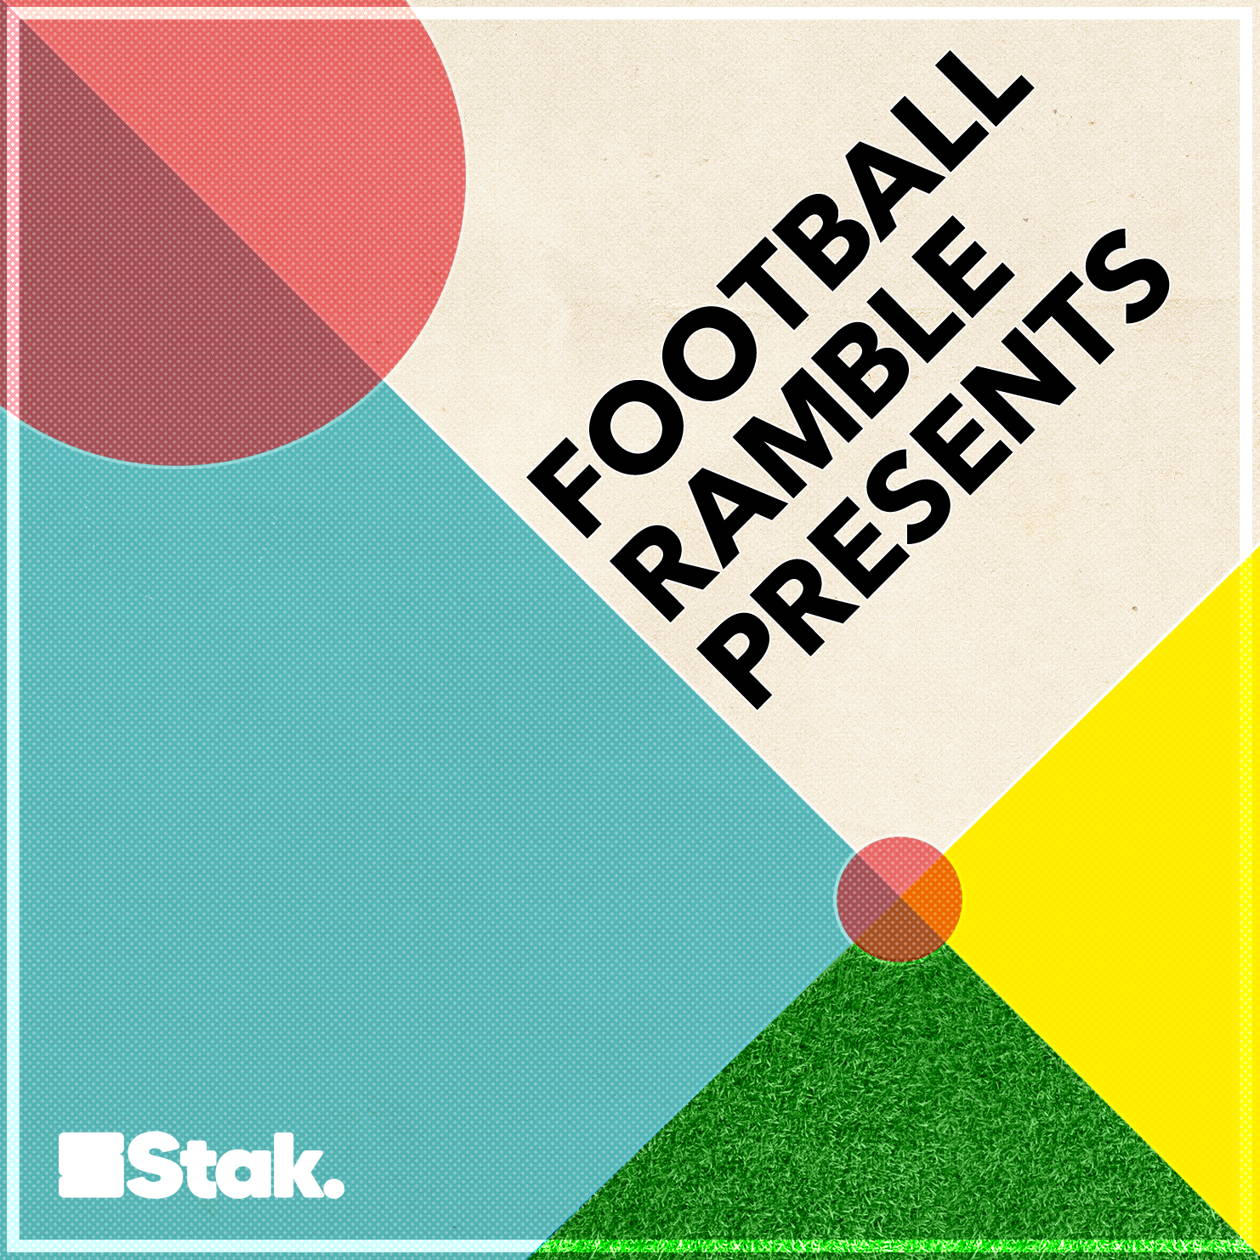 Artwork for the Football Ramble Presents podcast.